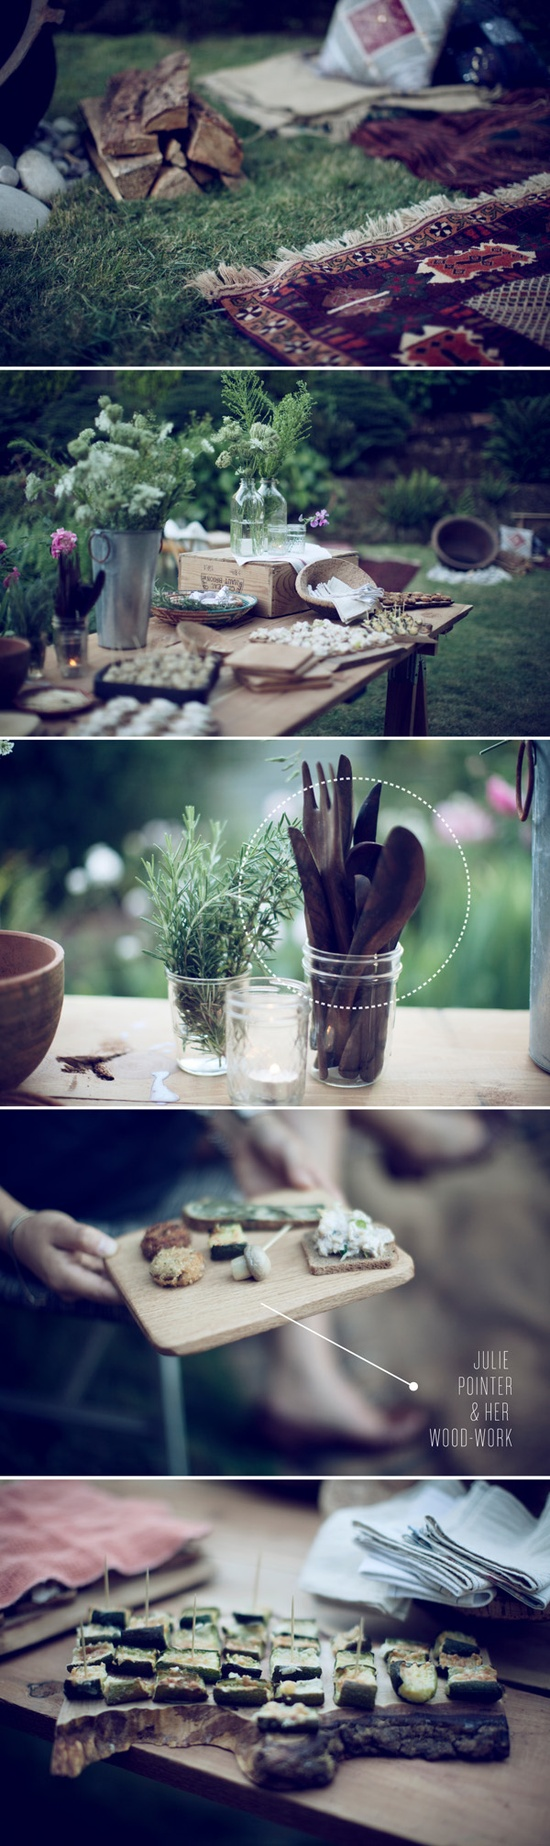 Off the table: backyard picnic